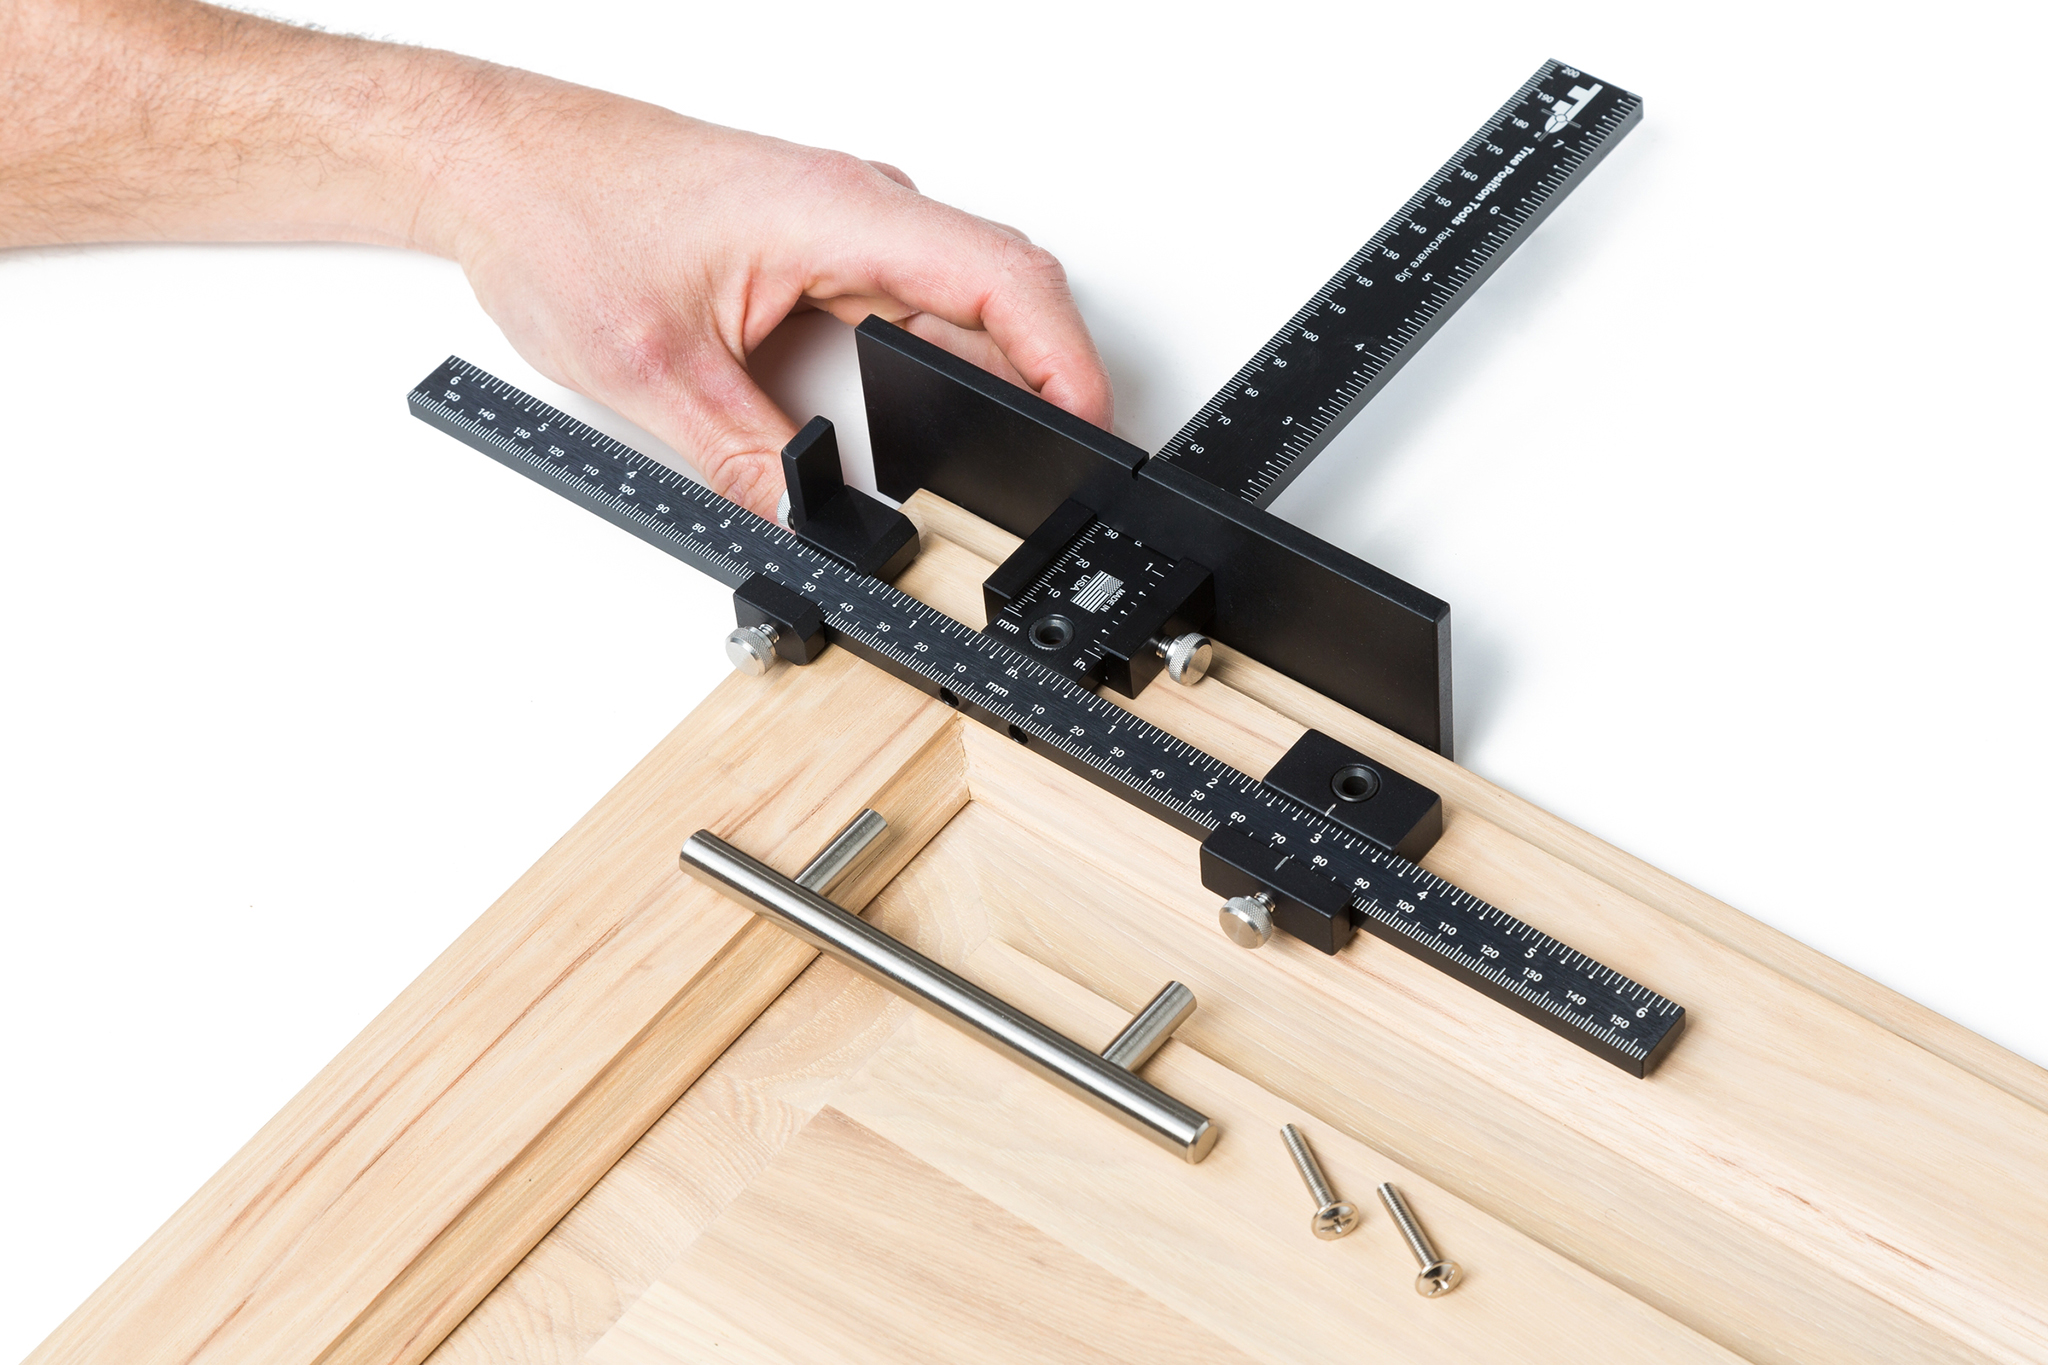 True Position Tp 1935 Cabinet Hardware Jig And Long